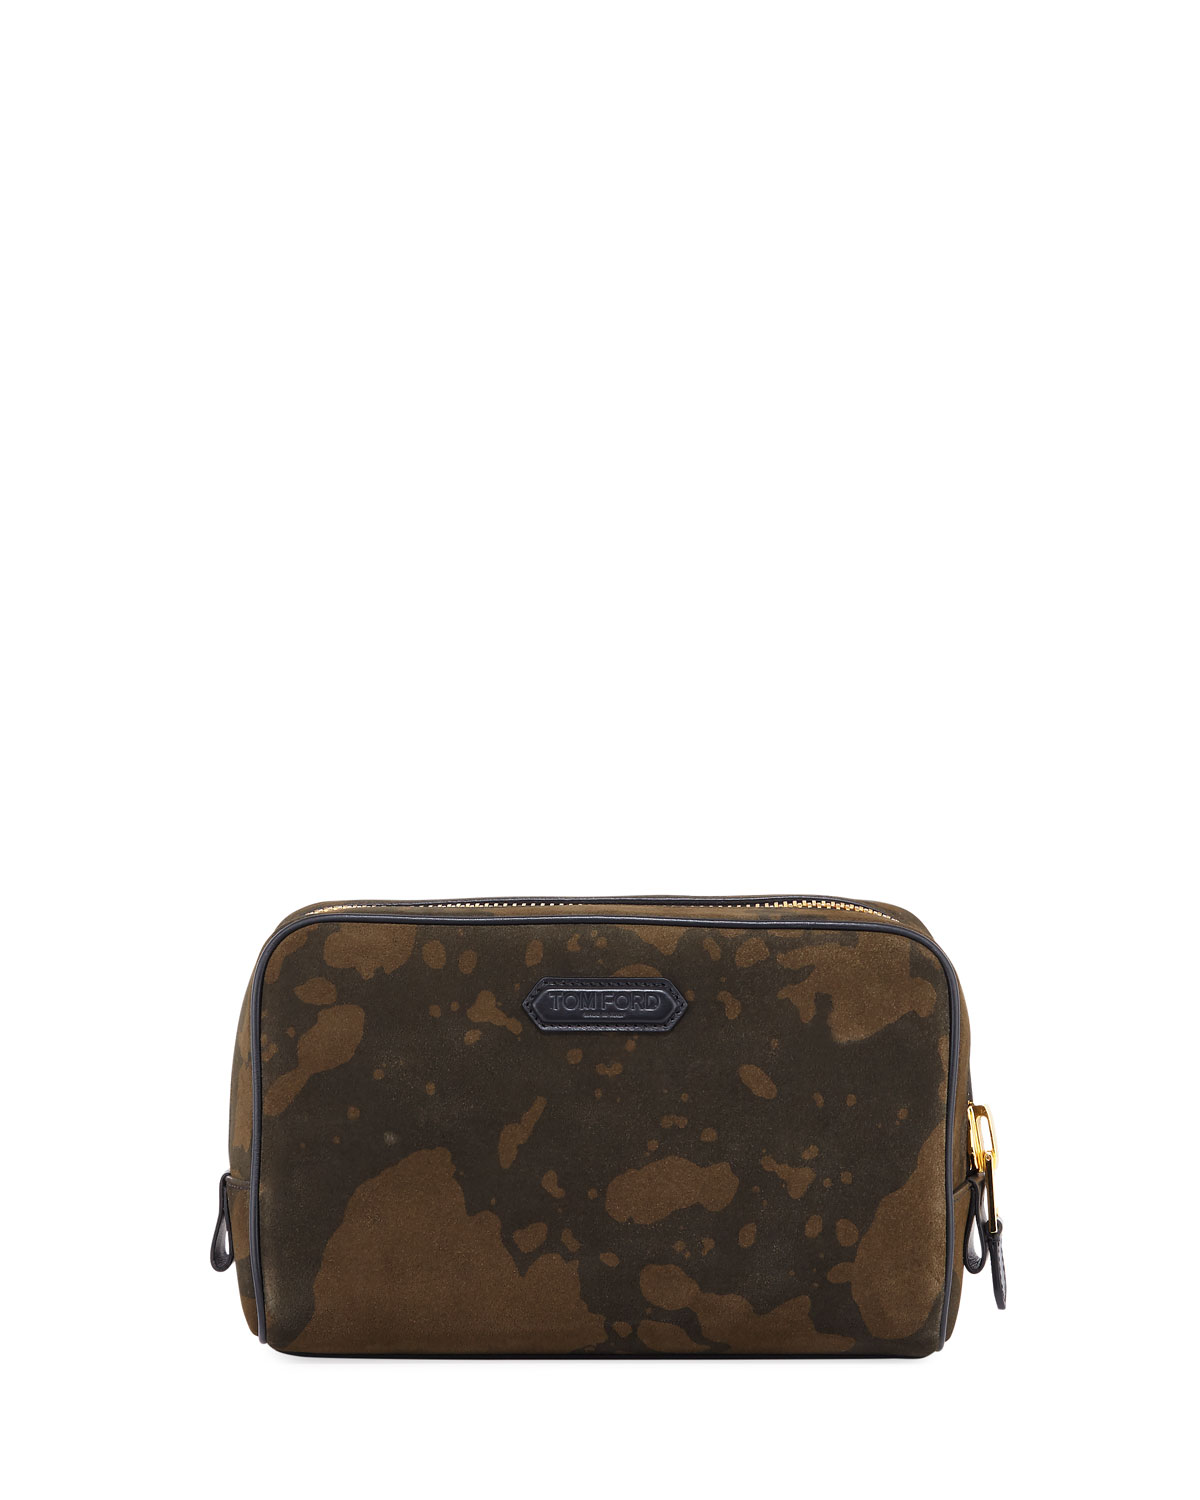 Tom Ford Travel Men's Camo Suede Travel Toiletry Case